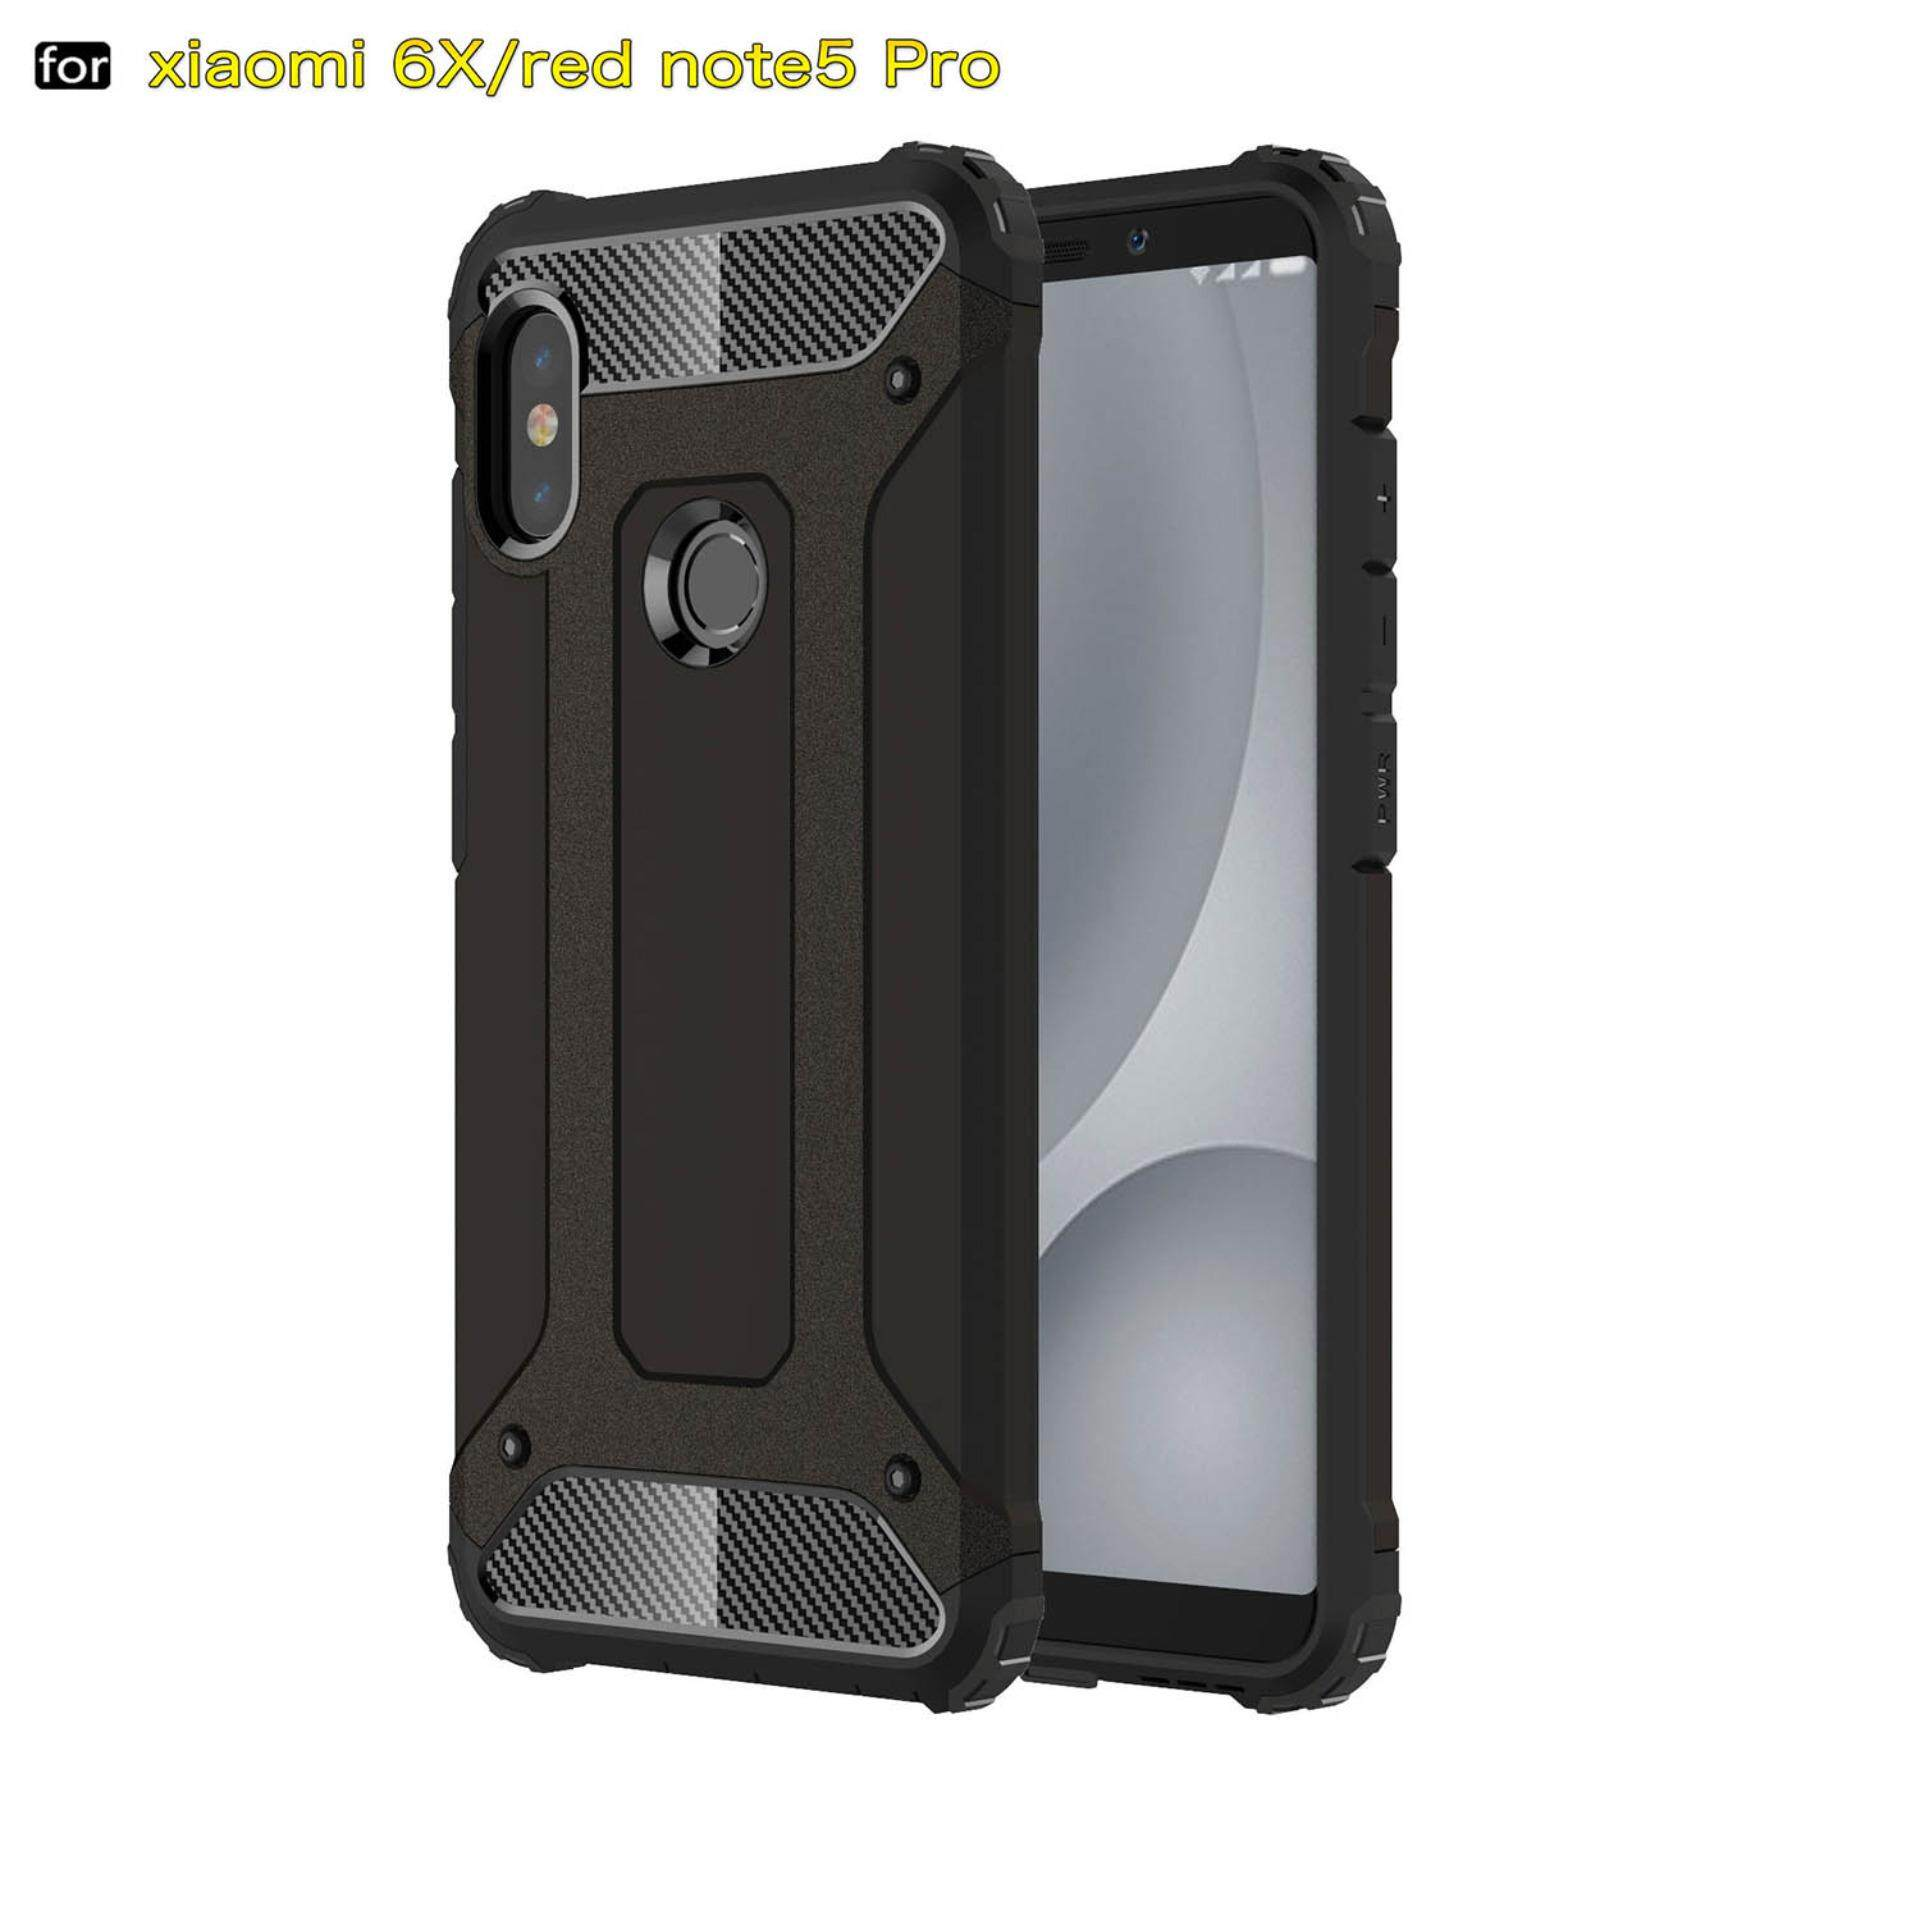 Sell Armor Rugged Hybrid Cheapest Best Quality My Store 2in1 Case Samsung Galaxy Tab A 70 2016 T285 Myr 19